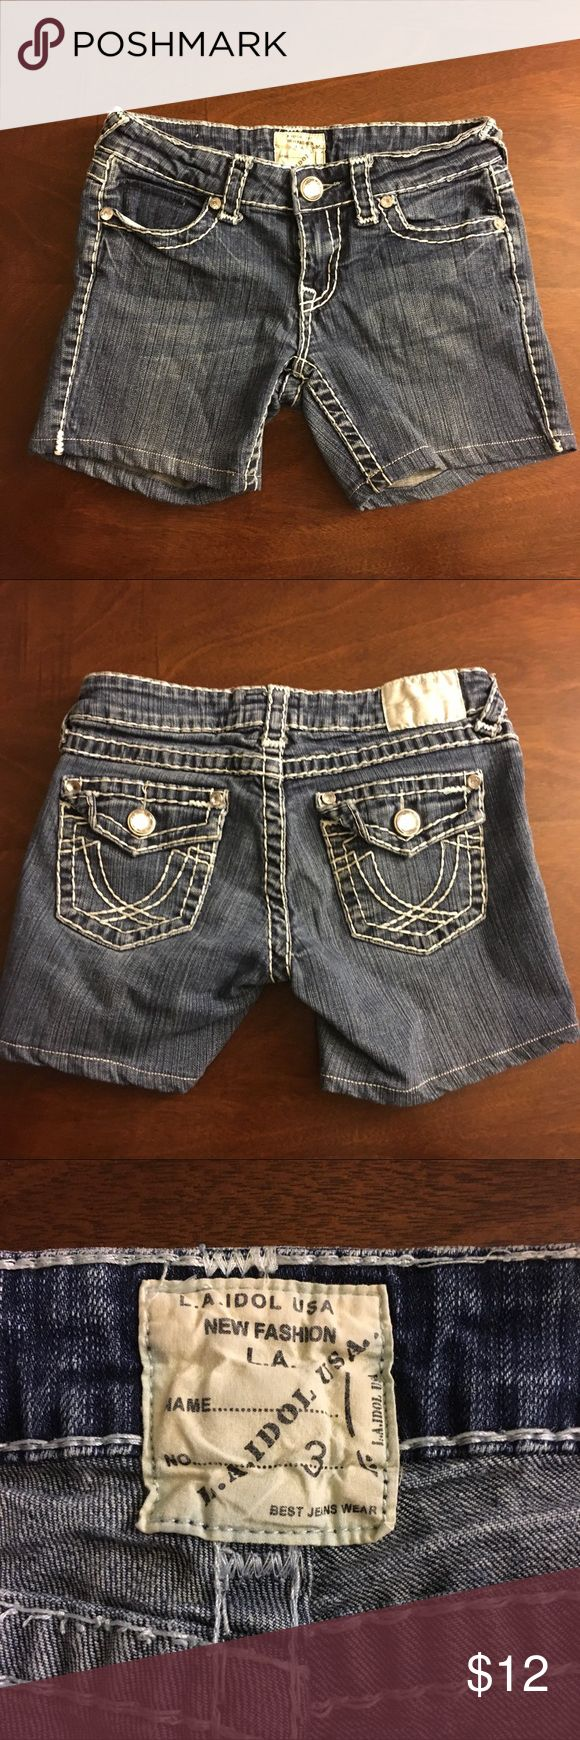 Denim shorts,white stitching bling buttons Great used condition denim shorts. White stitching and bling buttons. Size 3 L.A. idol USA Shorts Jean Shorts